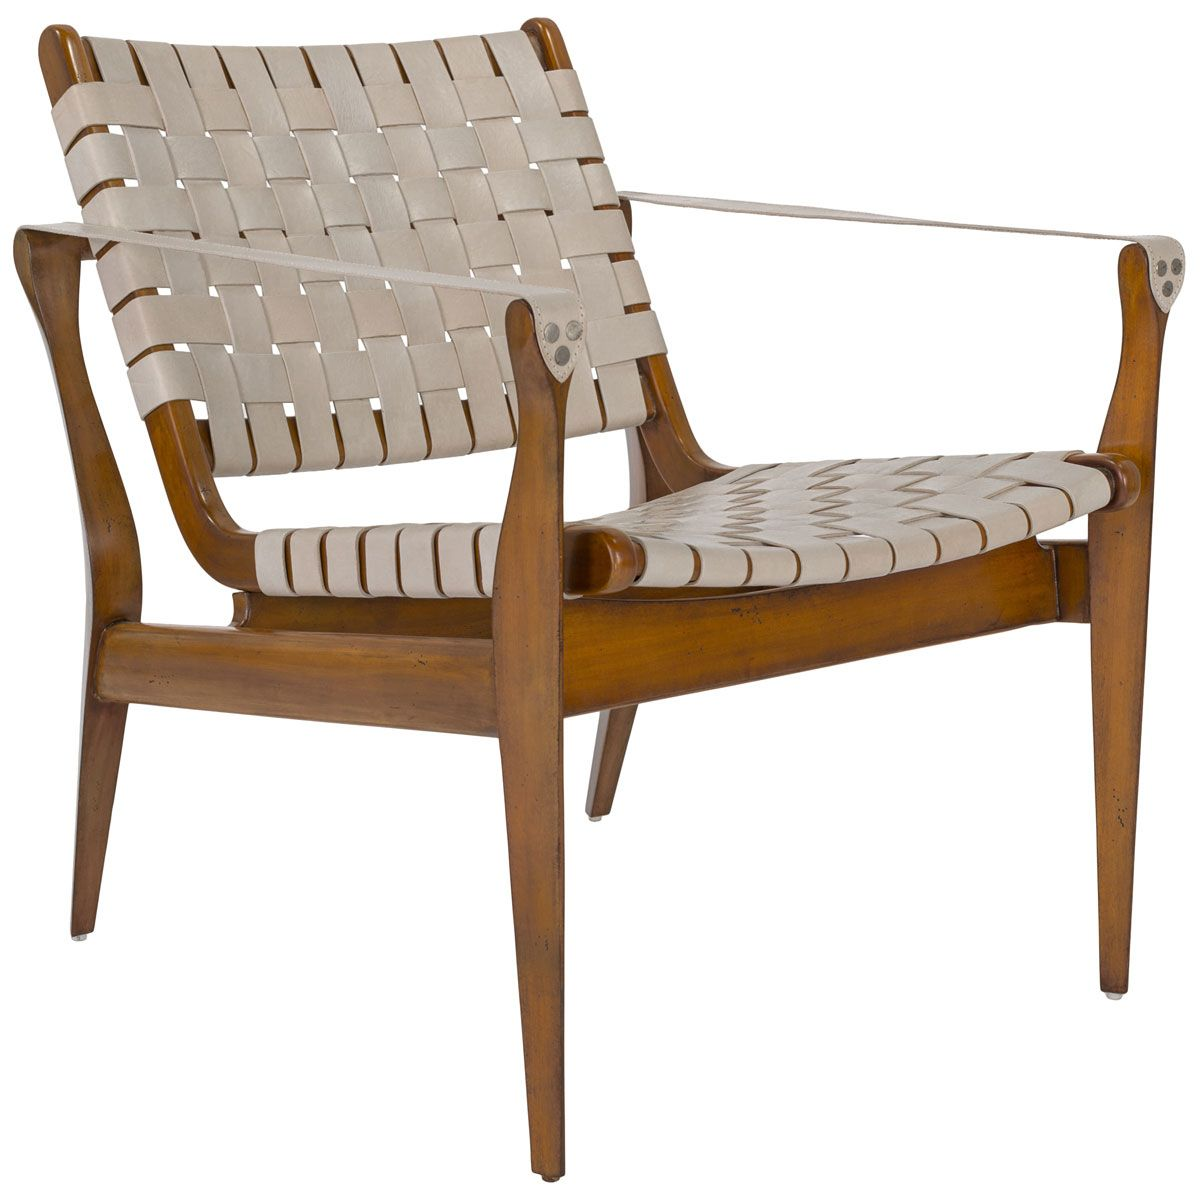 This Mid Century Woven Leather Strap Armchair From The Safavieh Couture  Collection Is A Familiar Classic Refreshed For The Modern Aesthetic.    SFV9005A